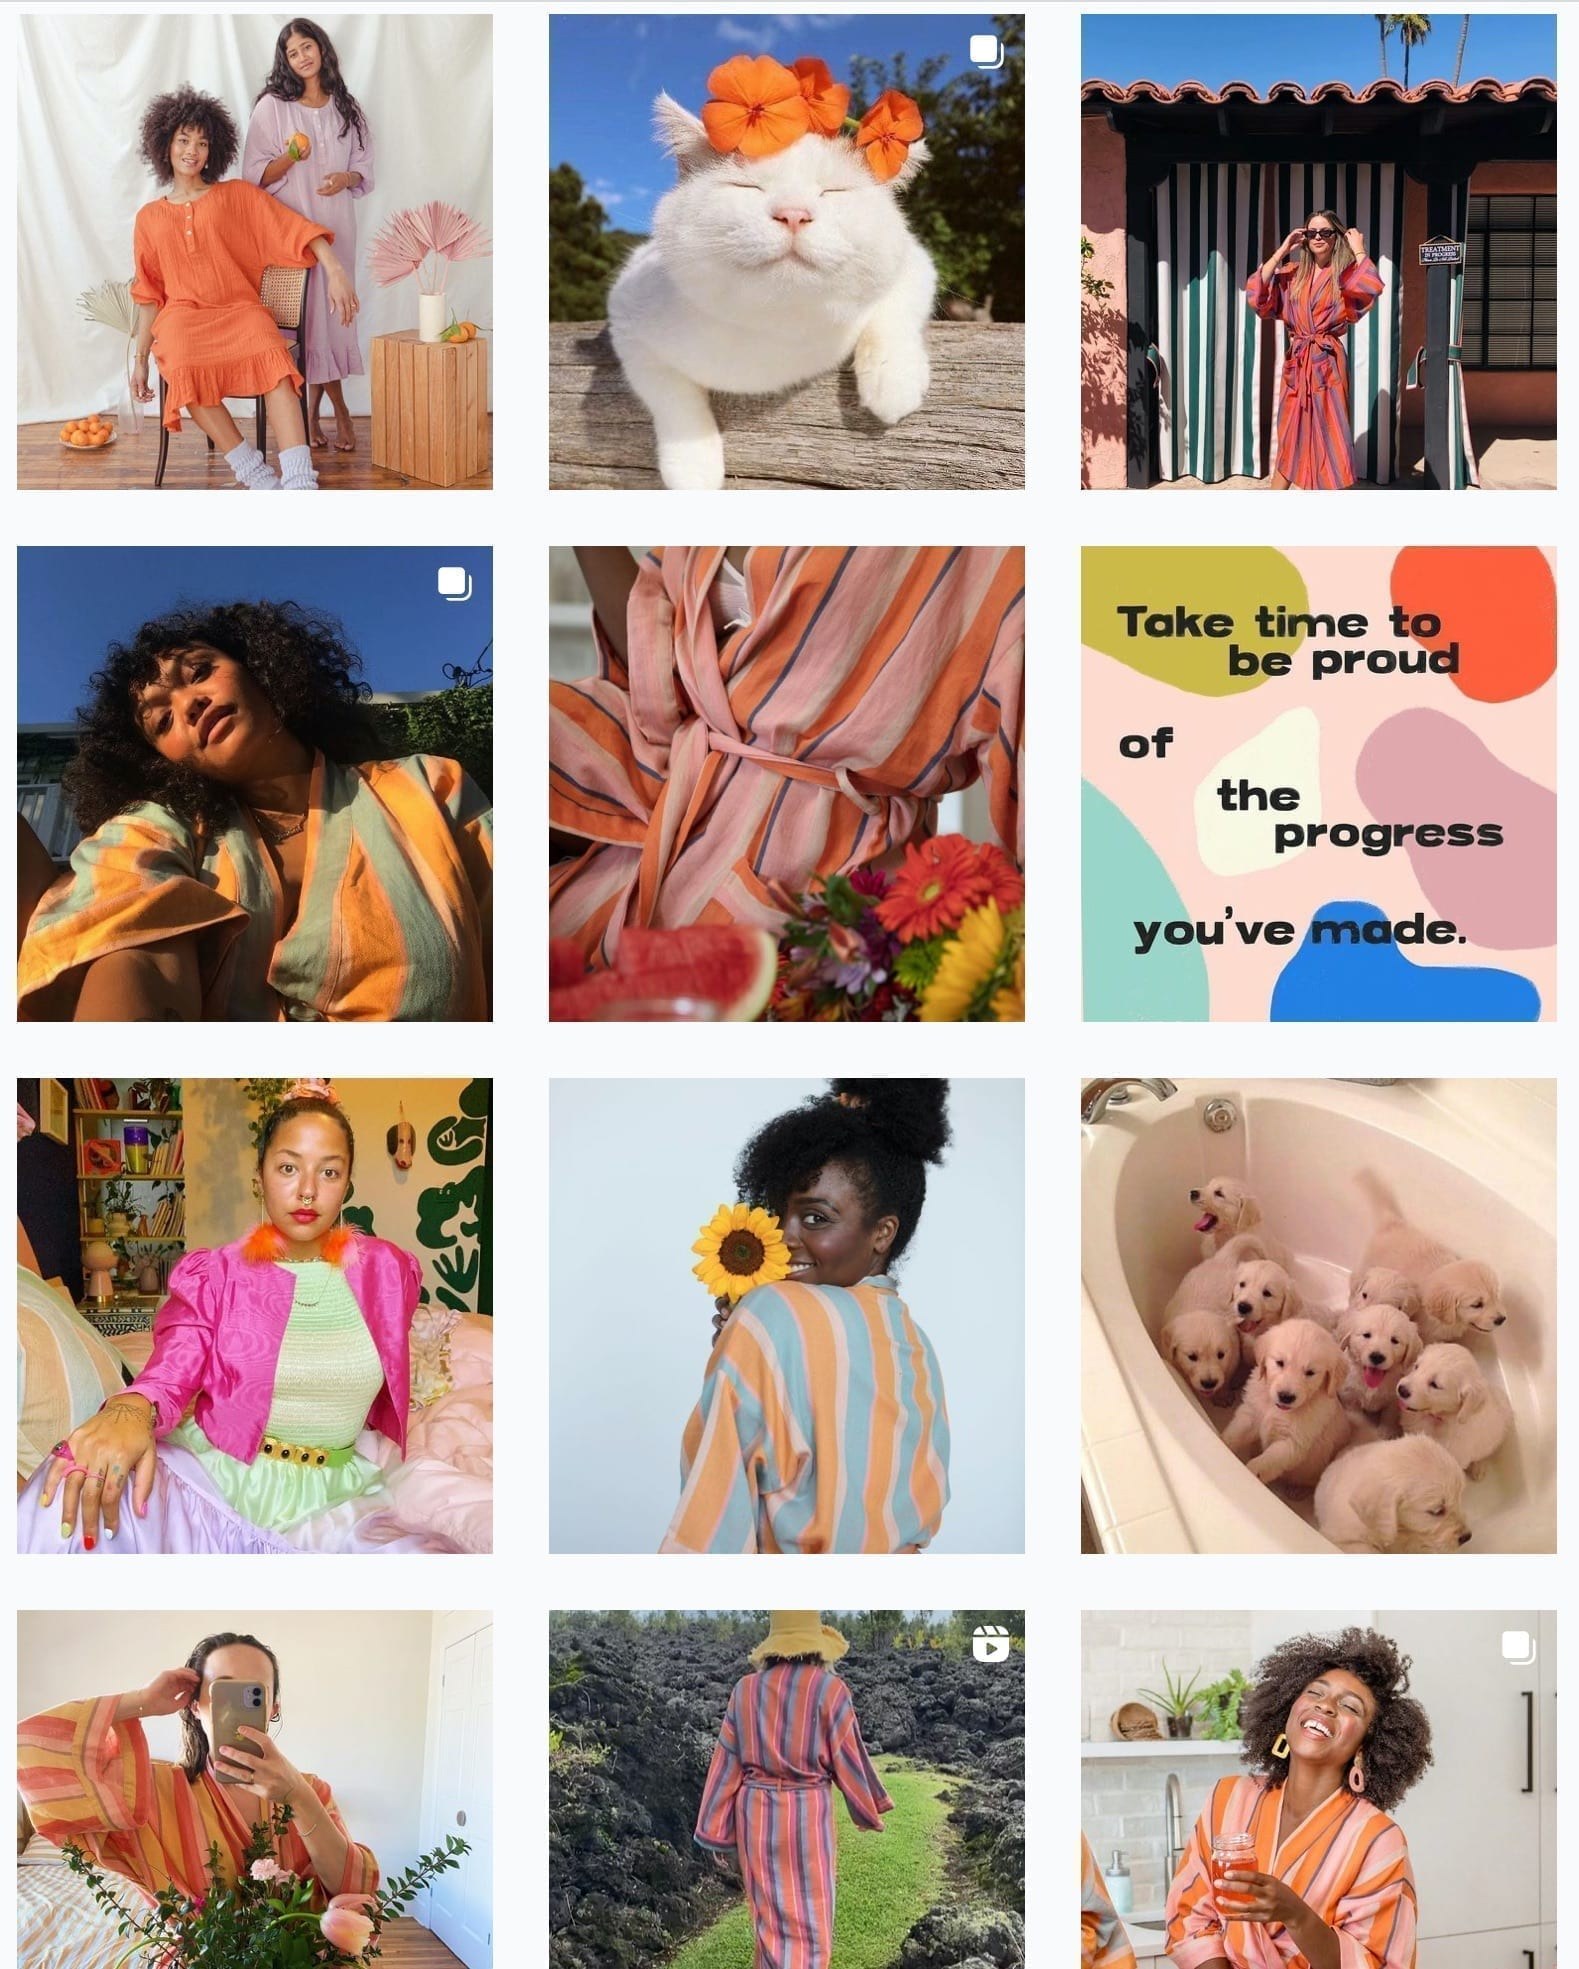 a collection of posts from Bathen's colorful Instagram feed